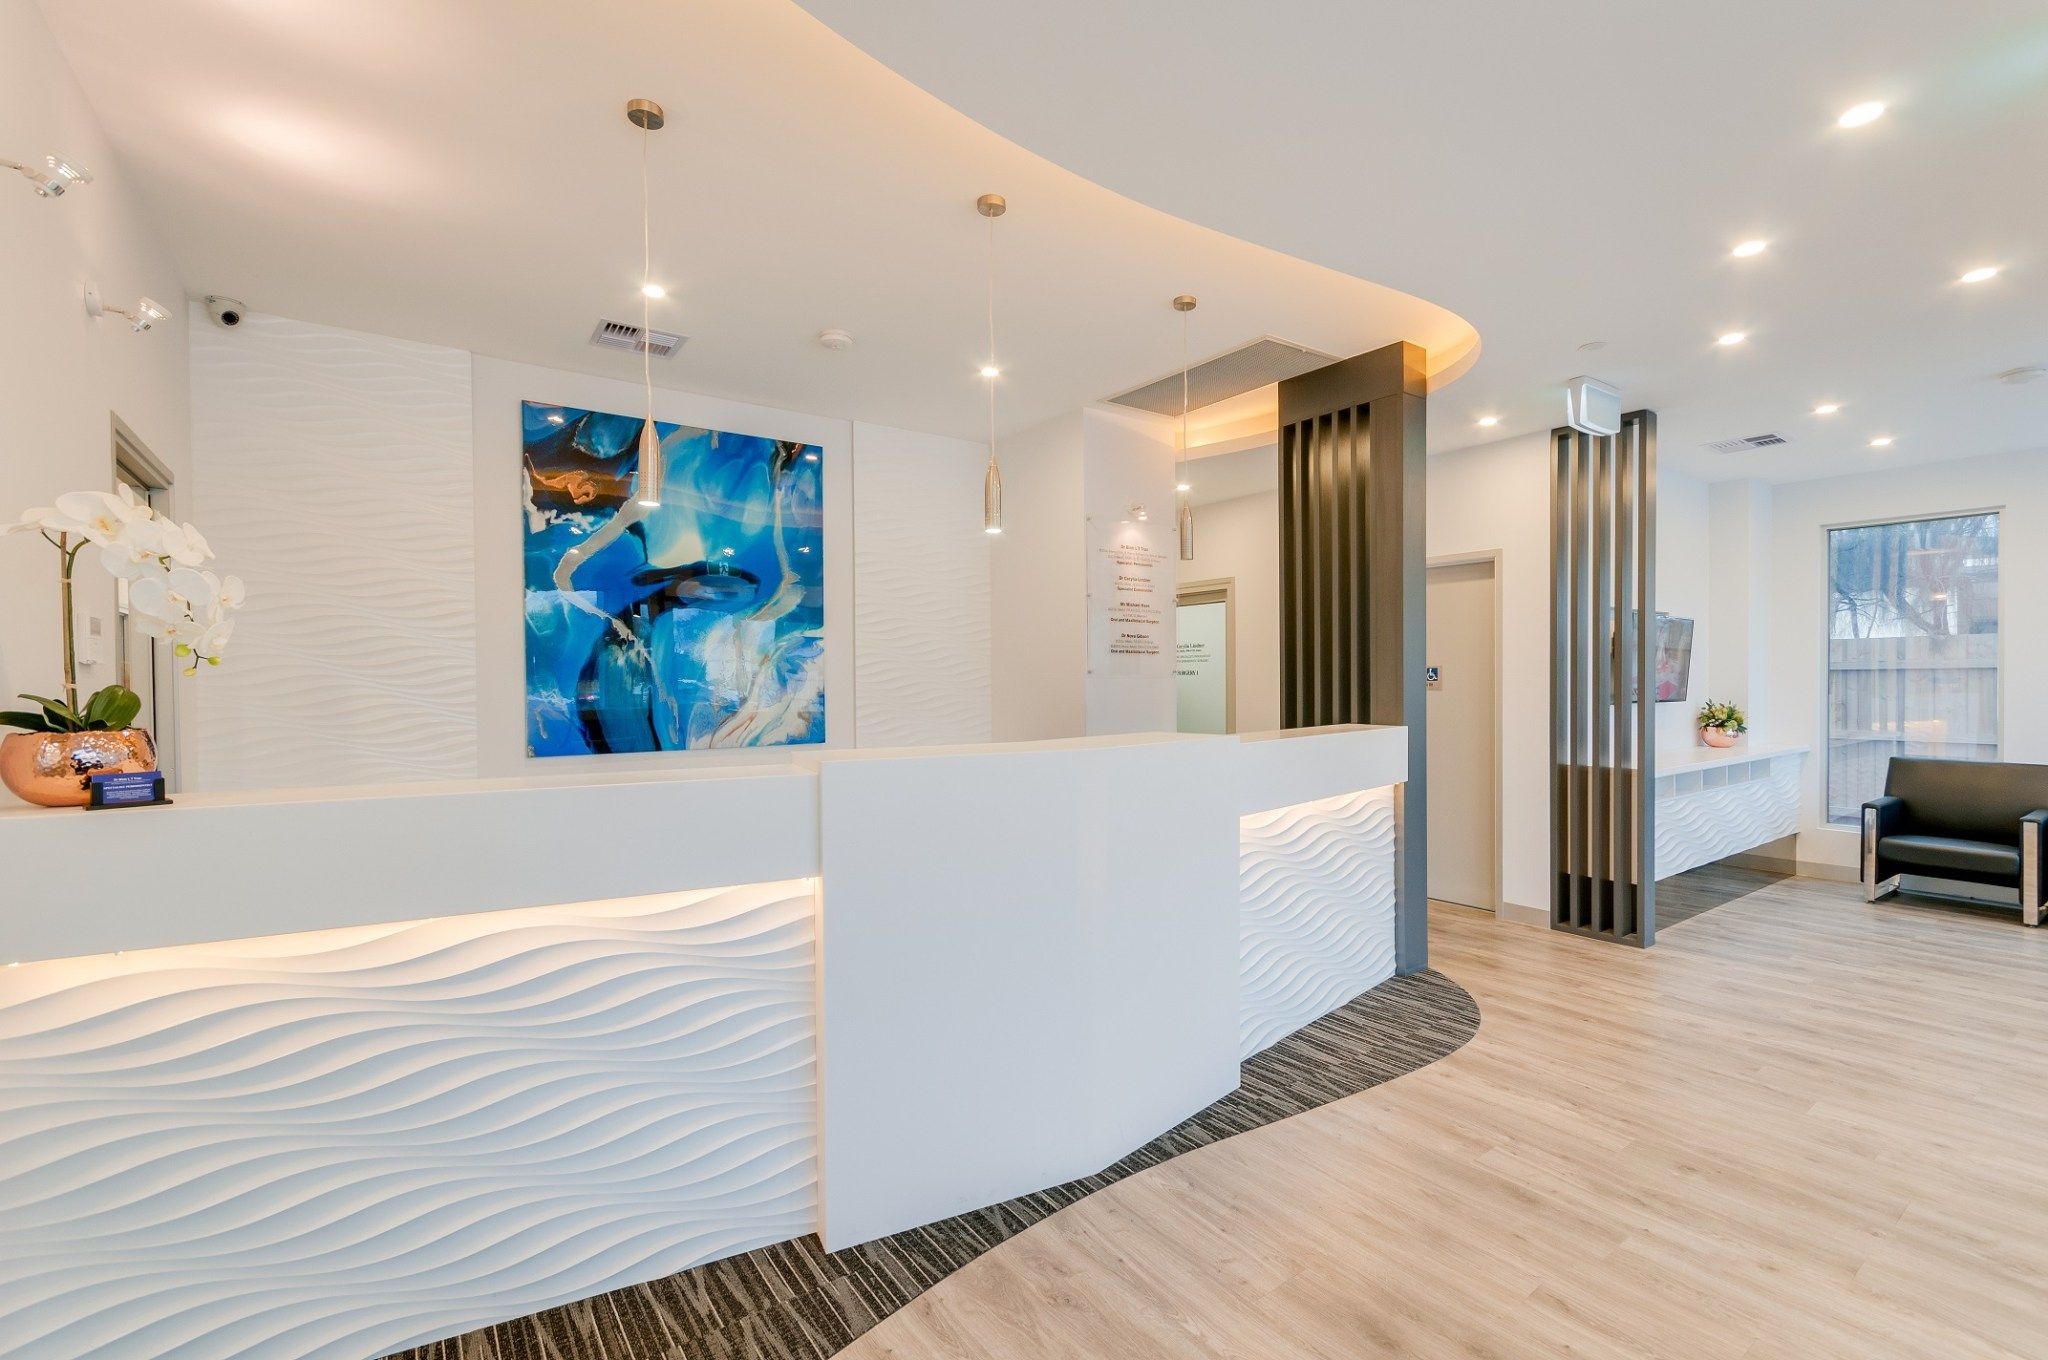 Bayside Perio | Optima Healthcare Group (With images ...